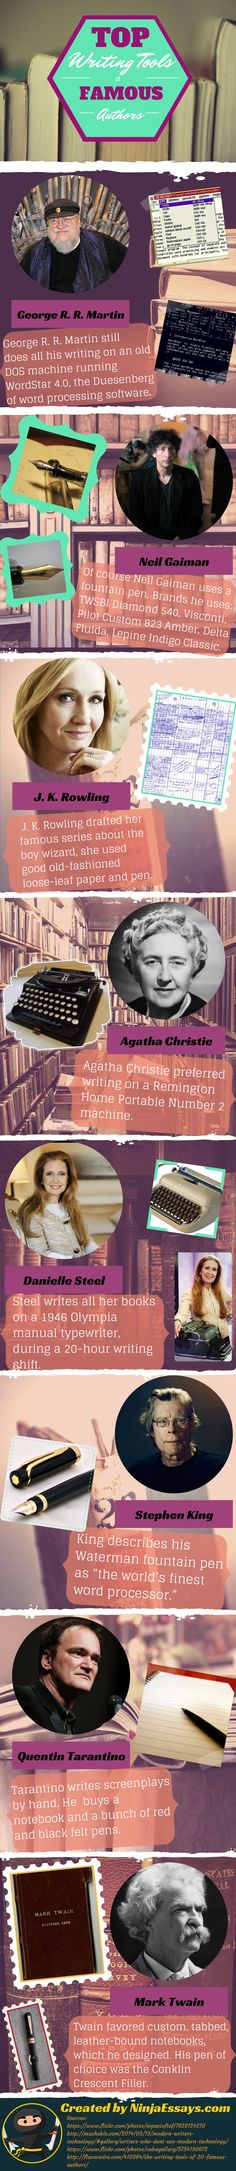 What tools did famous authors use to write their popular books?